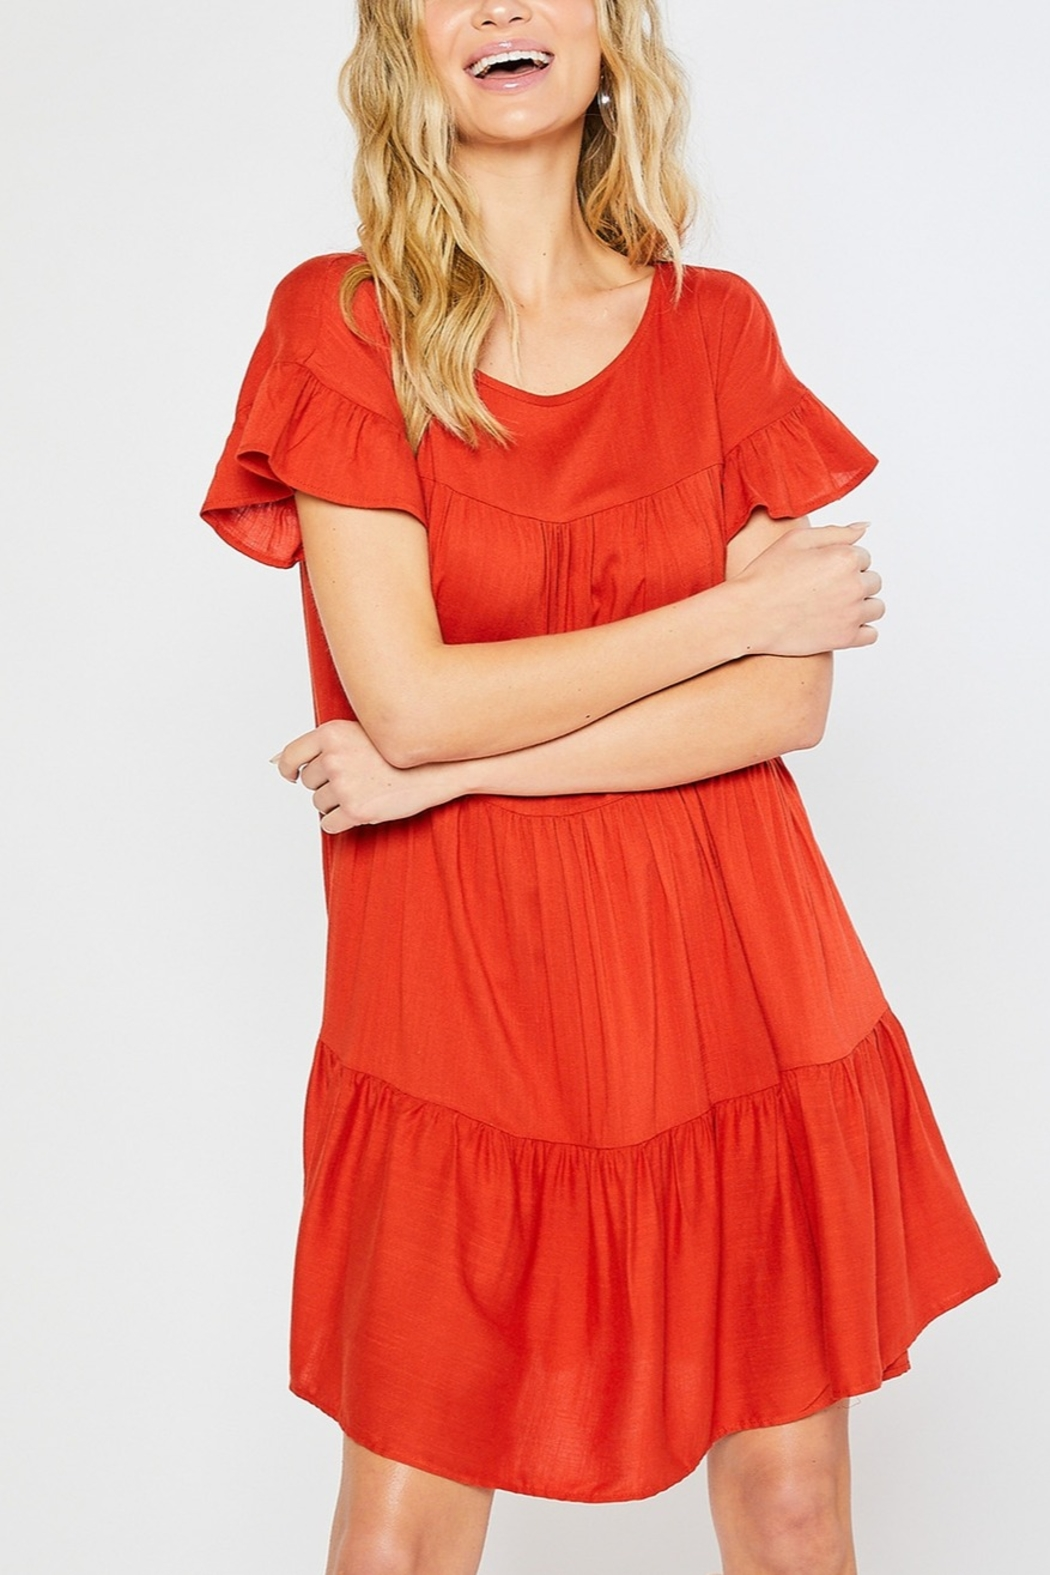 Lyn -Maree's Tiered Easy Going Dress - Front Full Image